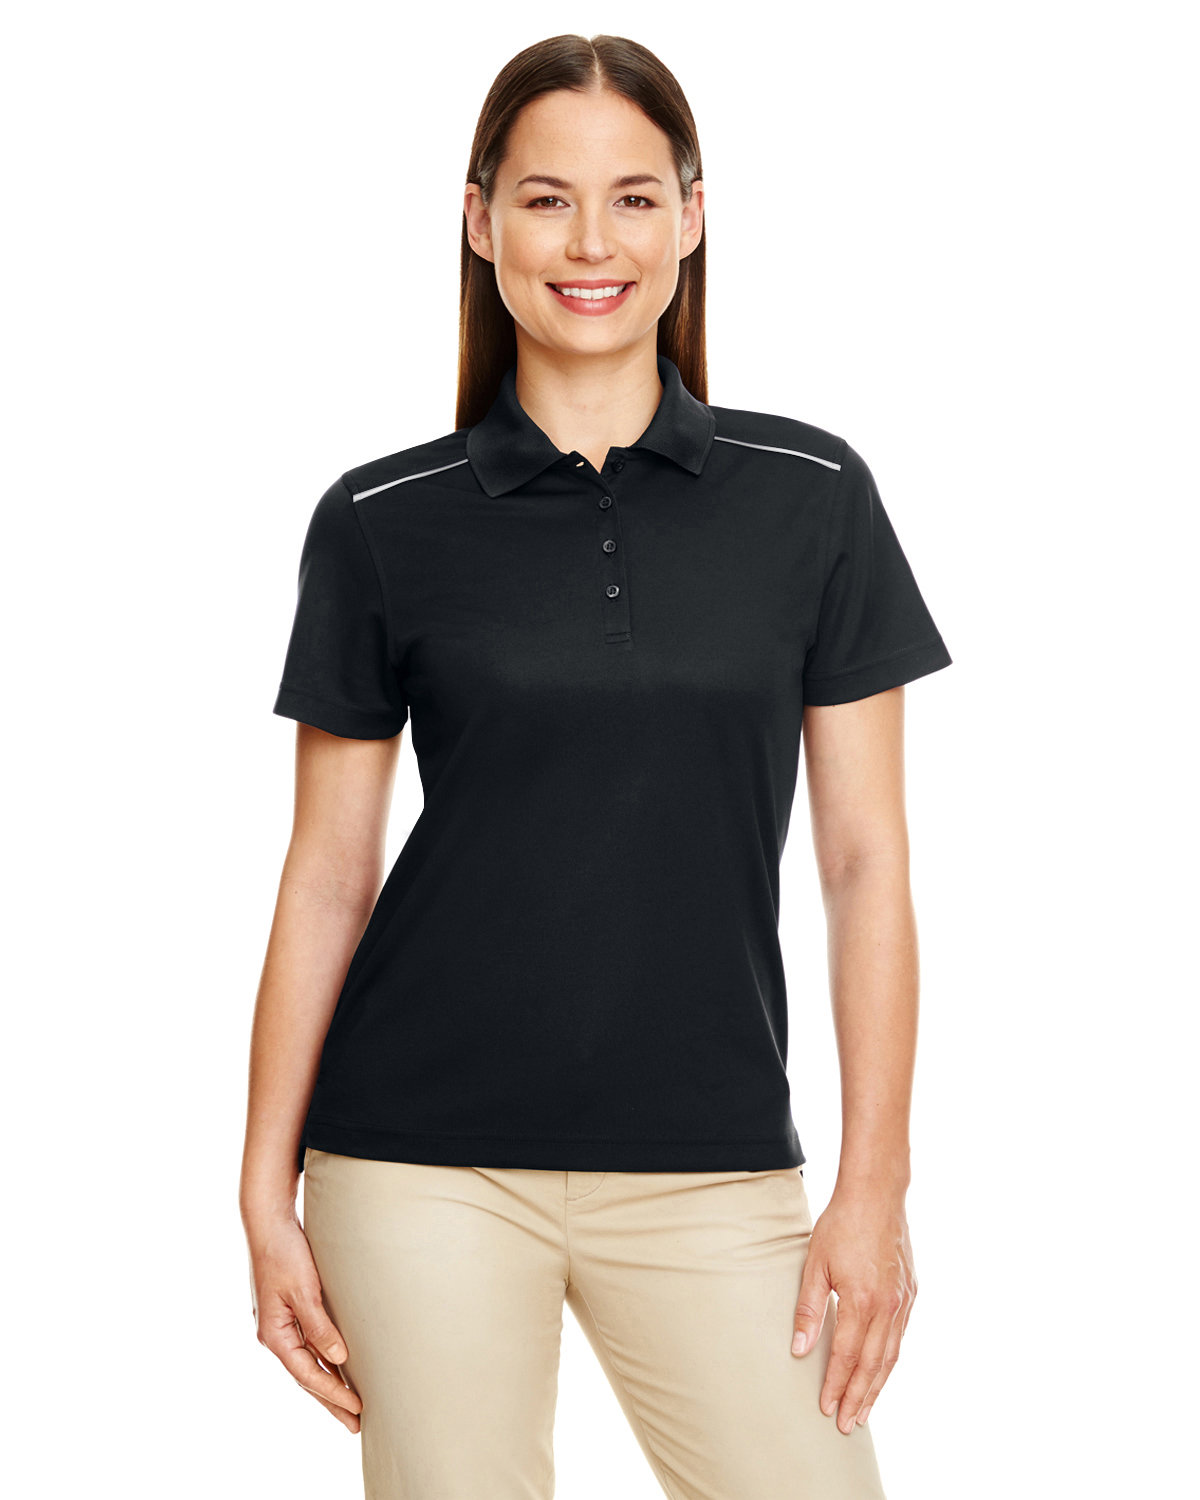 Core 365 Ladies' Radiant Performance Piqué Polo with Reflective Piping BLACK